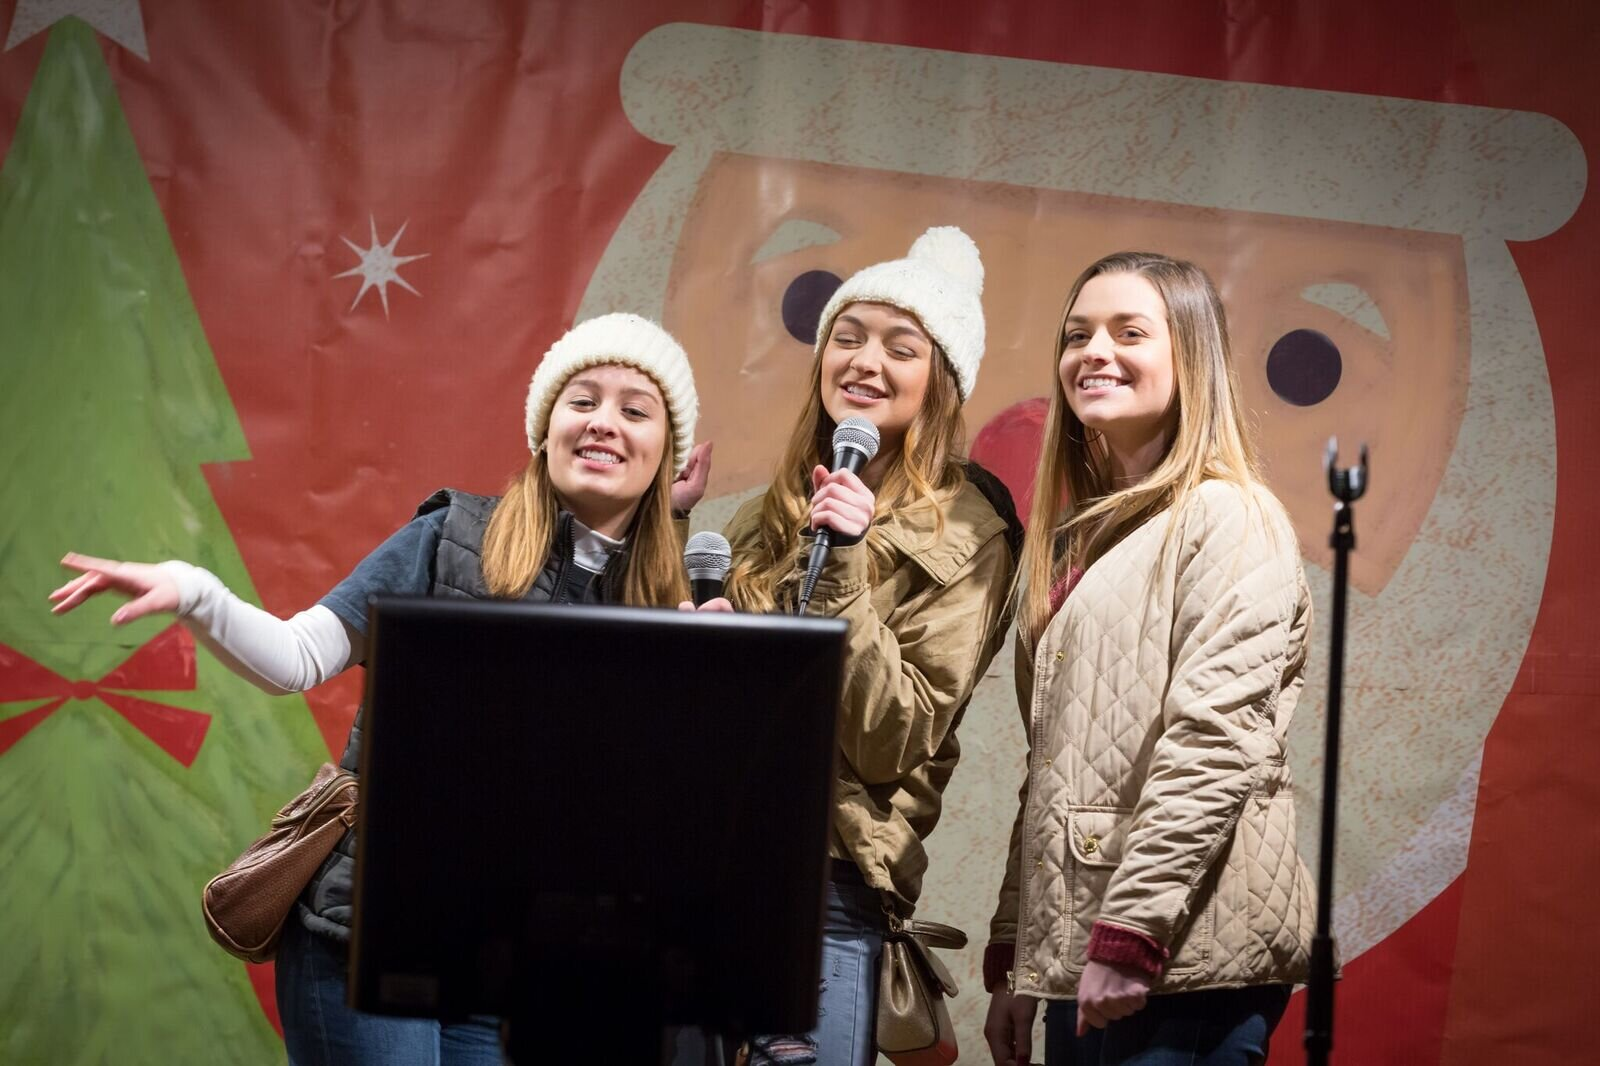 $1,000 Grand Prize Holiday Karaoke 🎤 - Stop by every Monday and Tuesday, November 25 - December 17, from 5:00 – 7:00 p.m. for the return of the Holiday Karaoke Contest! Pittsburgh's best (and worst) amateur crooners will belt out holiday classics, vying to move on to the grand finale on December 23, where the winner goes home with a $1,000 grand prize. There are also nightly prizes and a gift for all participants. Walk-ups accepted as space allows. Sign-ups are coming soon.